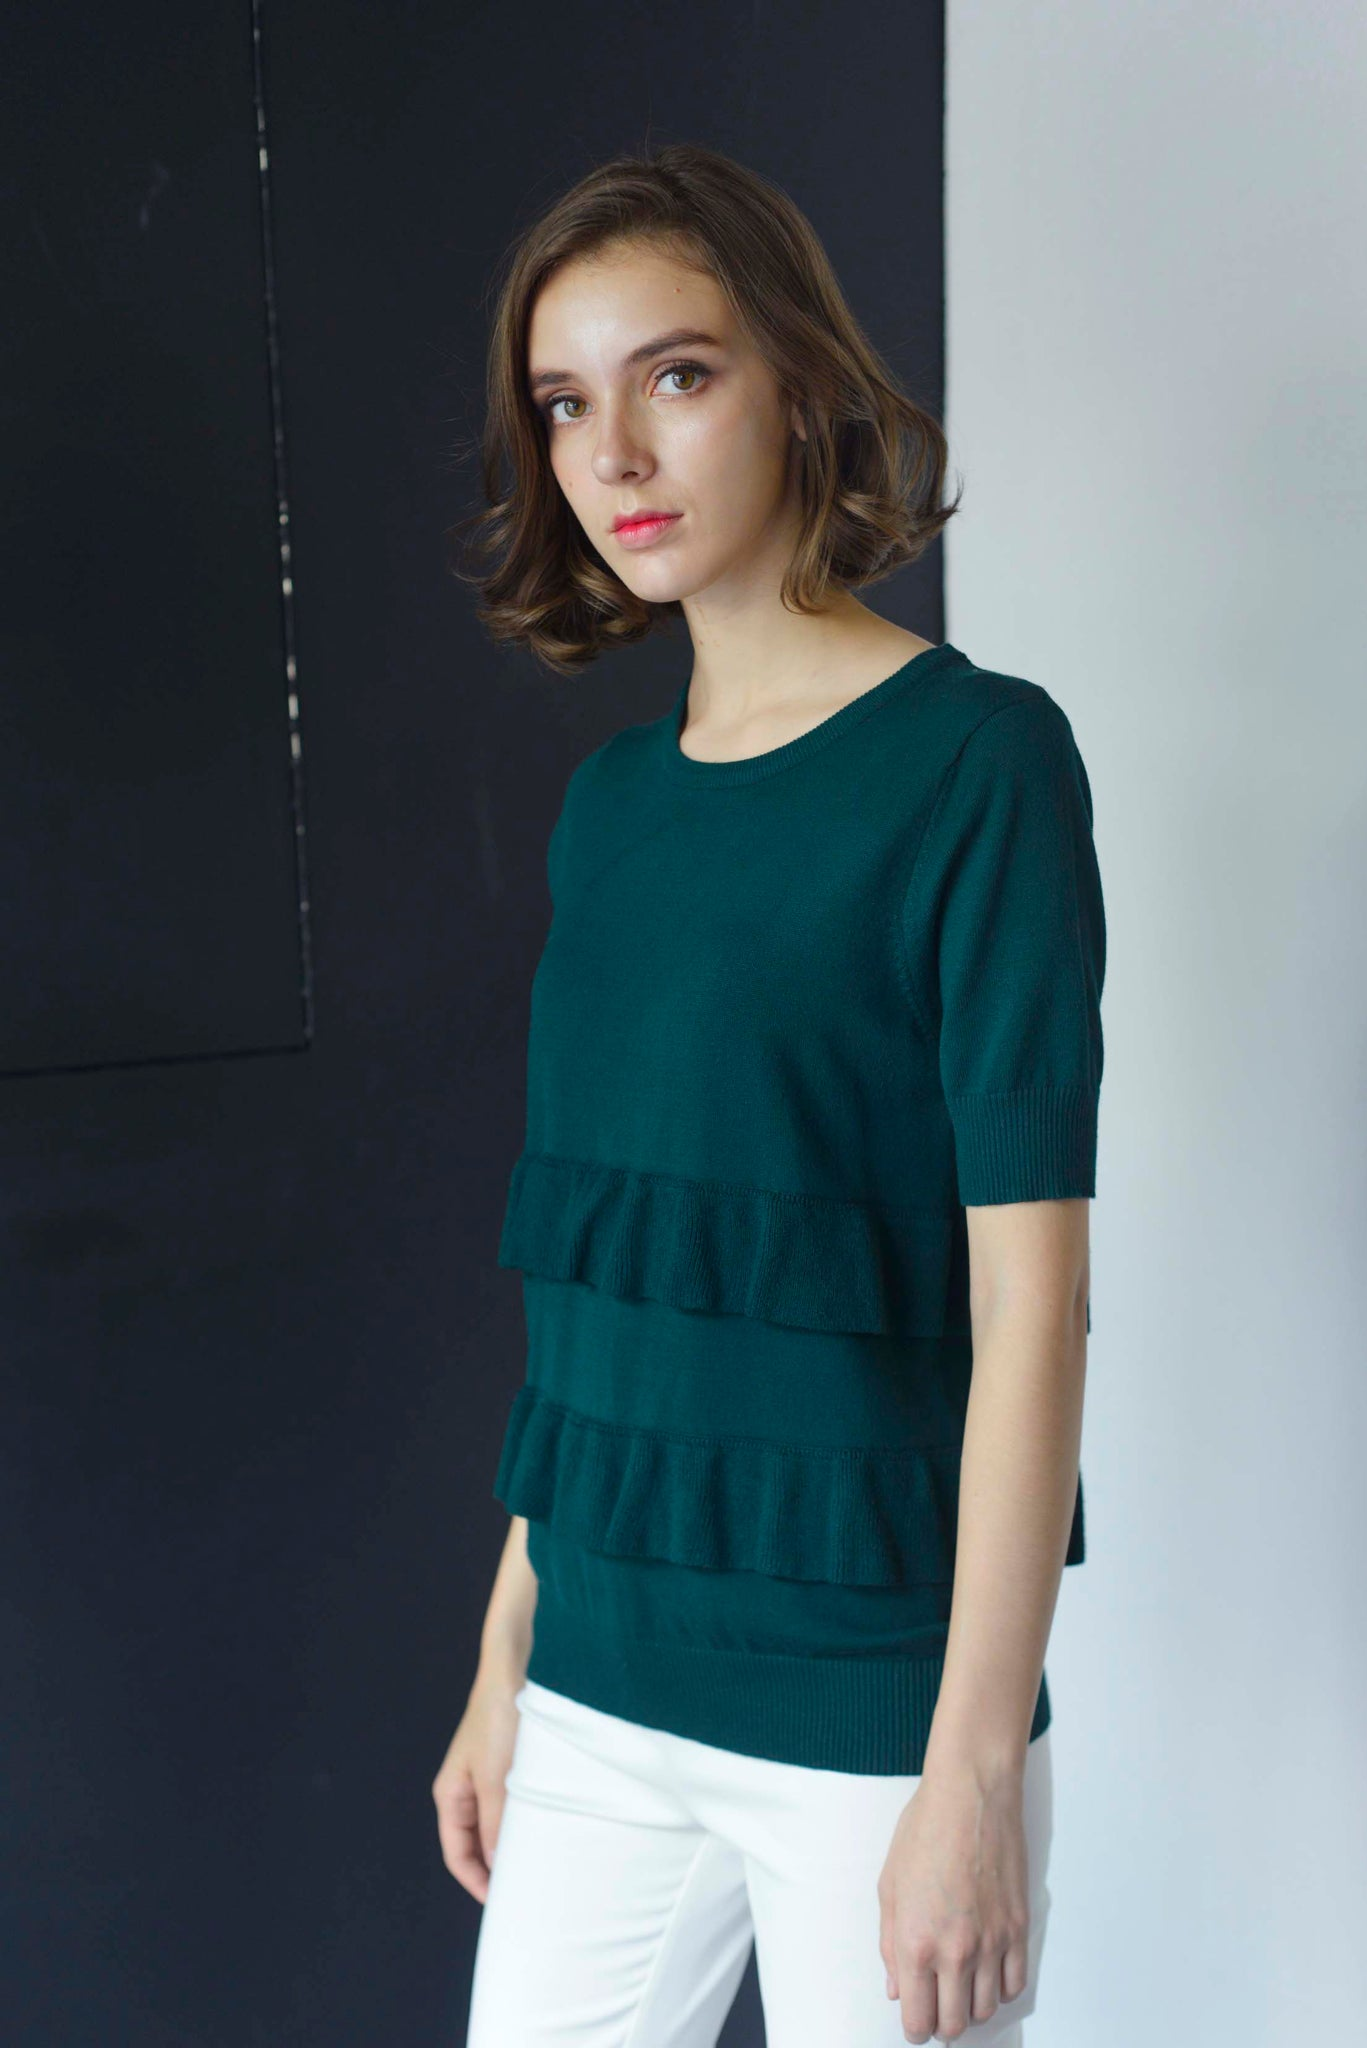 KNIT-Drika Top in Green